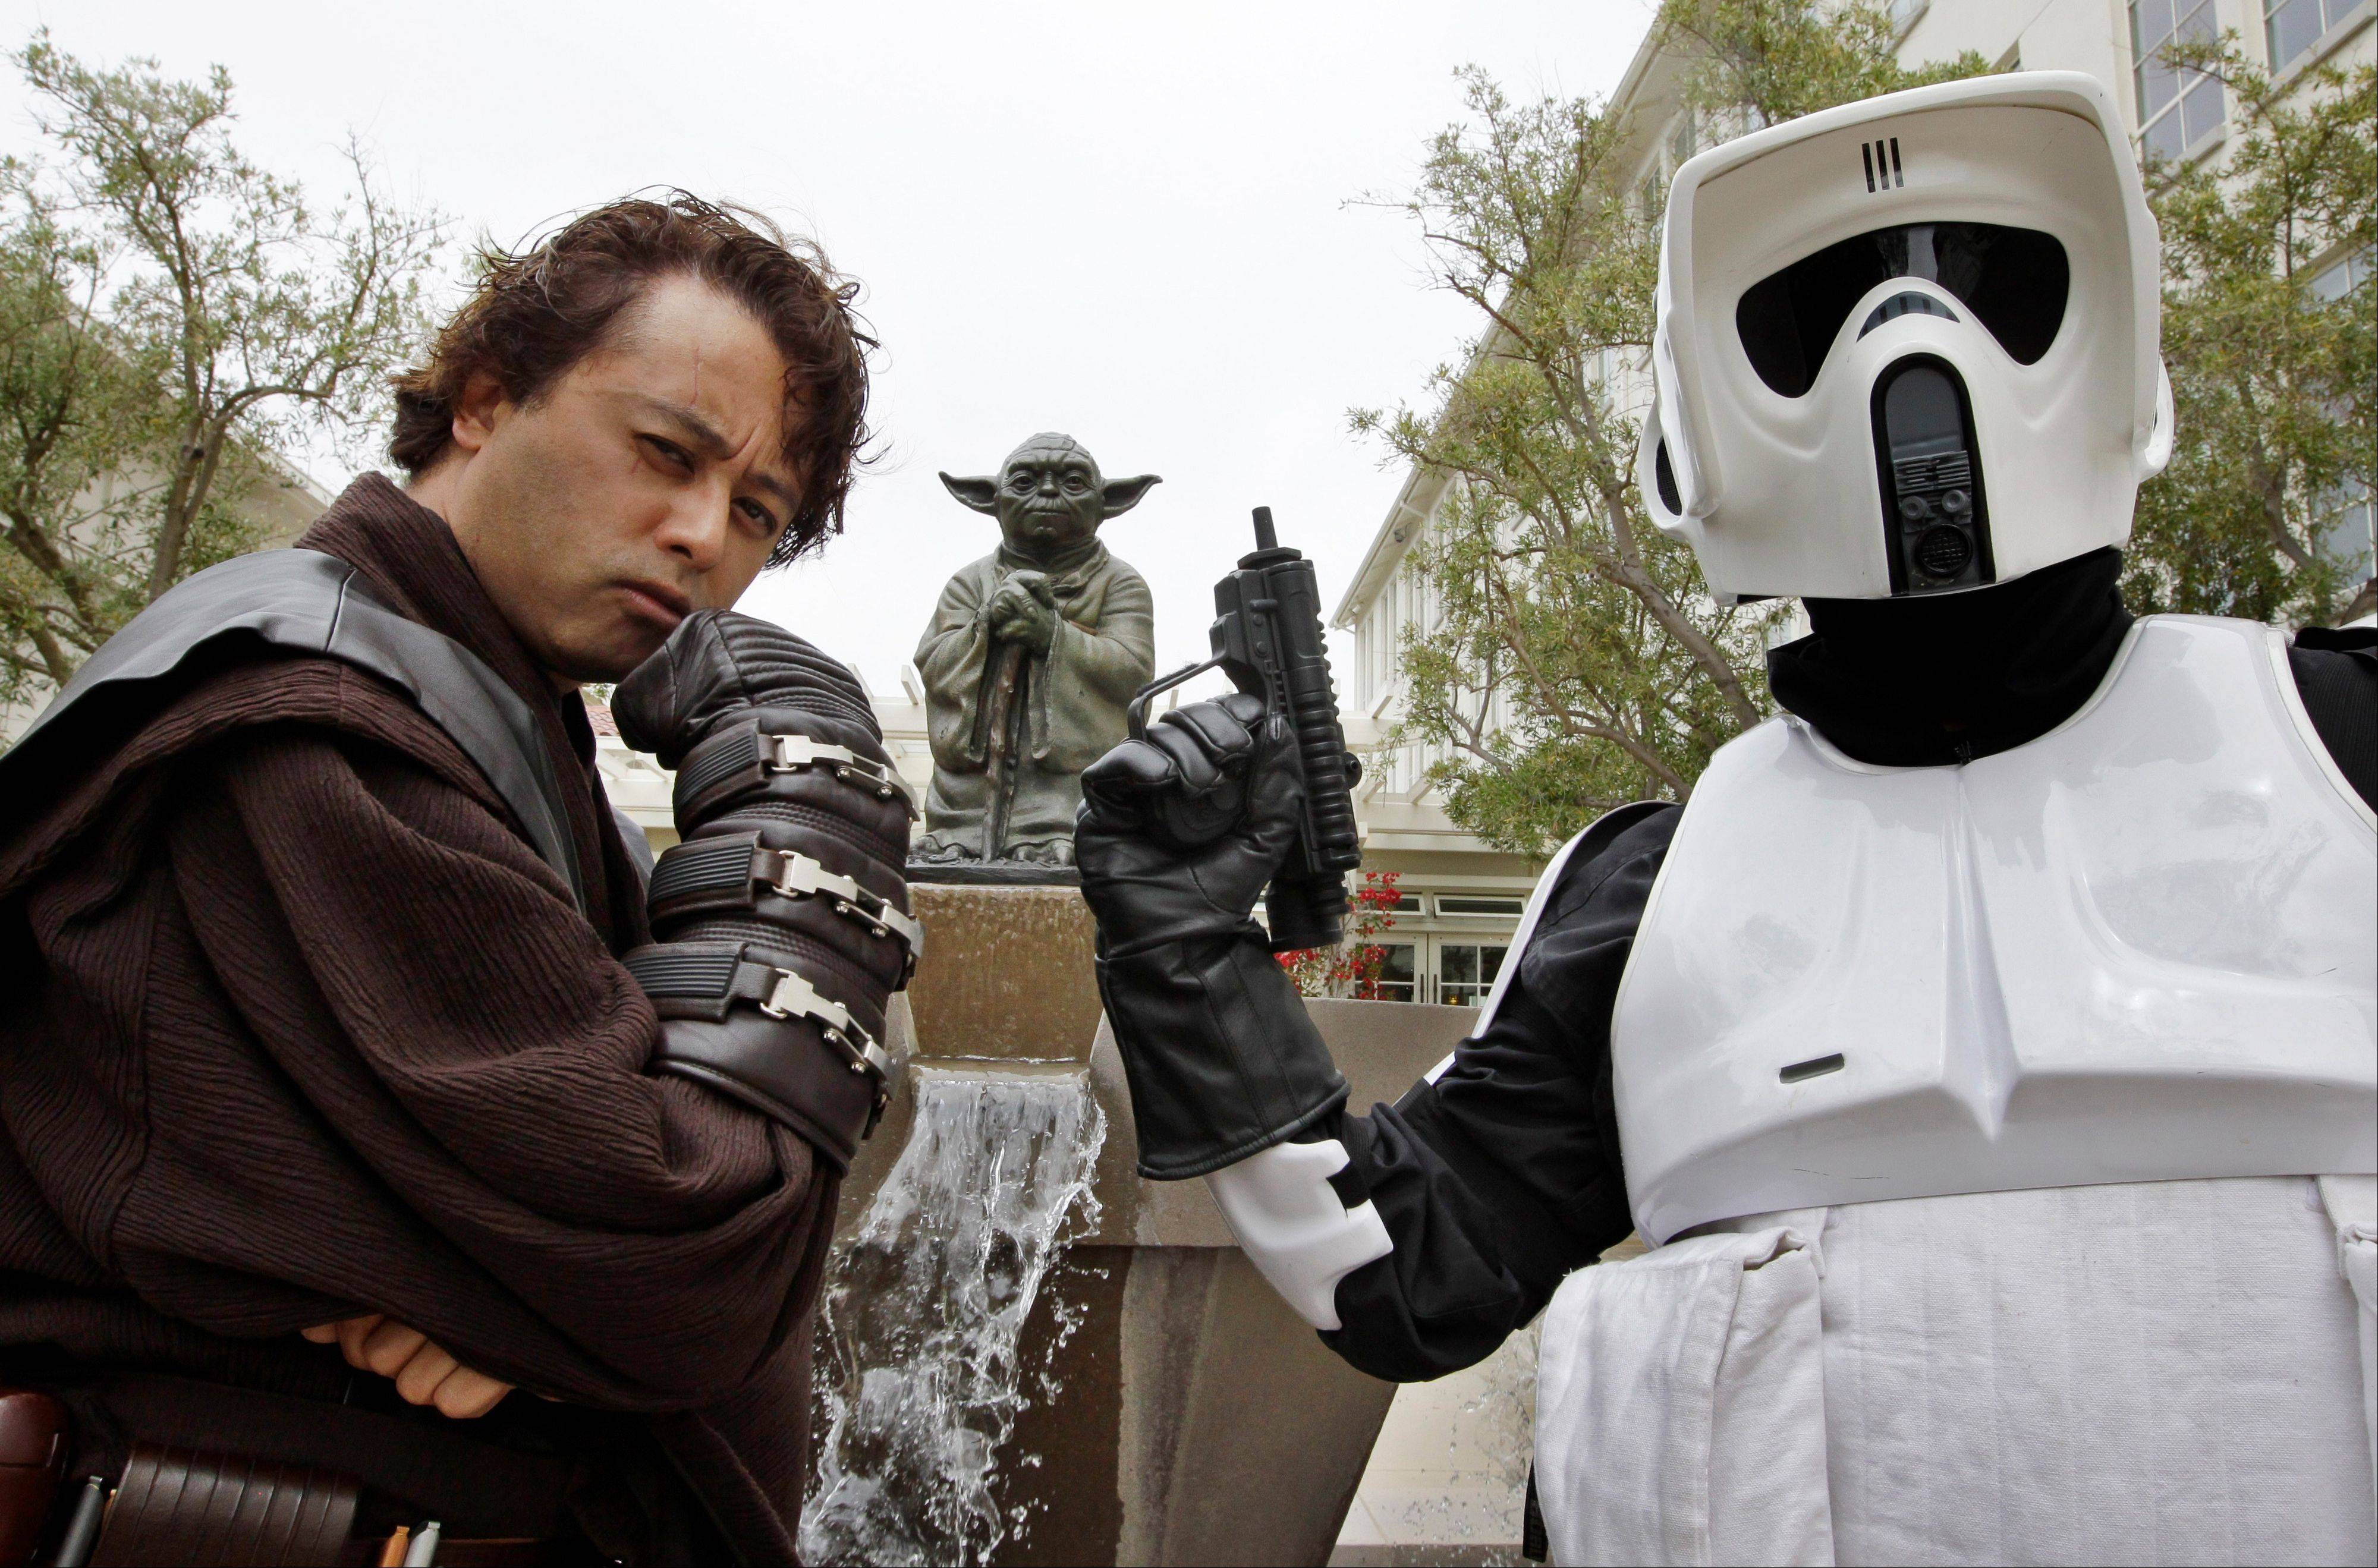 Matt Tolosa, left, wearing an Anakin Skywalker costume, and his brother Dale Tolosa, dressed as a Stormtrooper, pose in front of a life-size replica of Yoda in San Francisco.